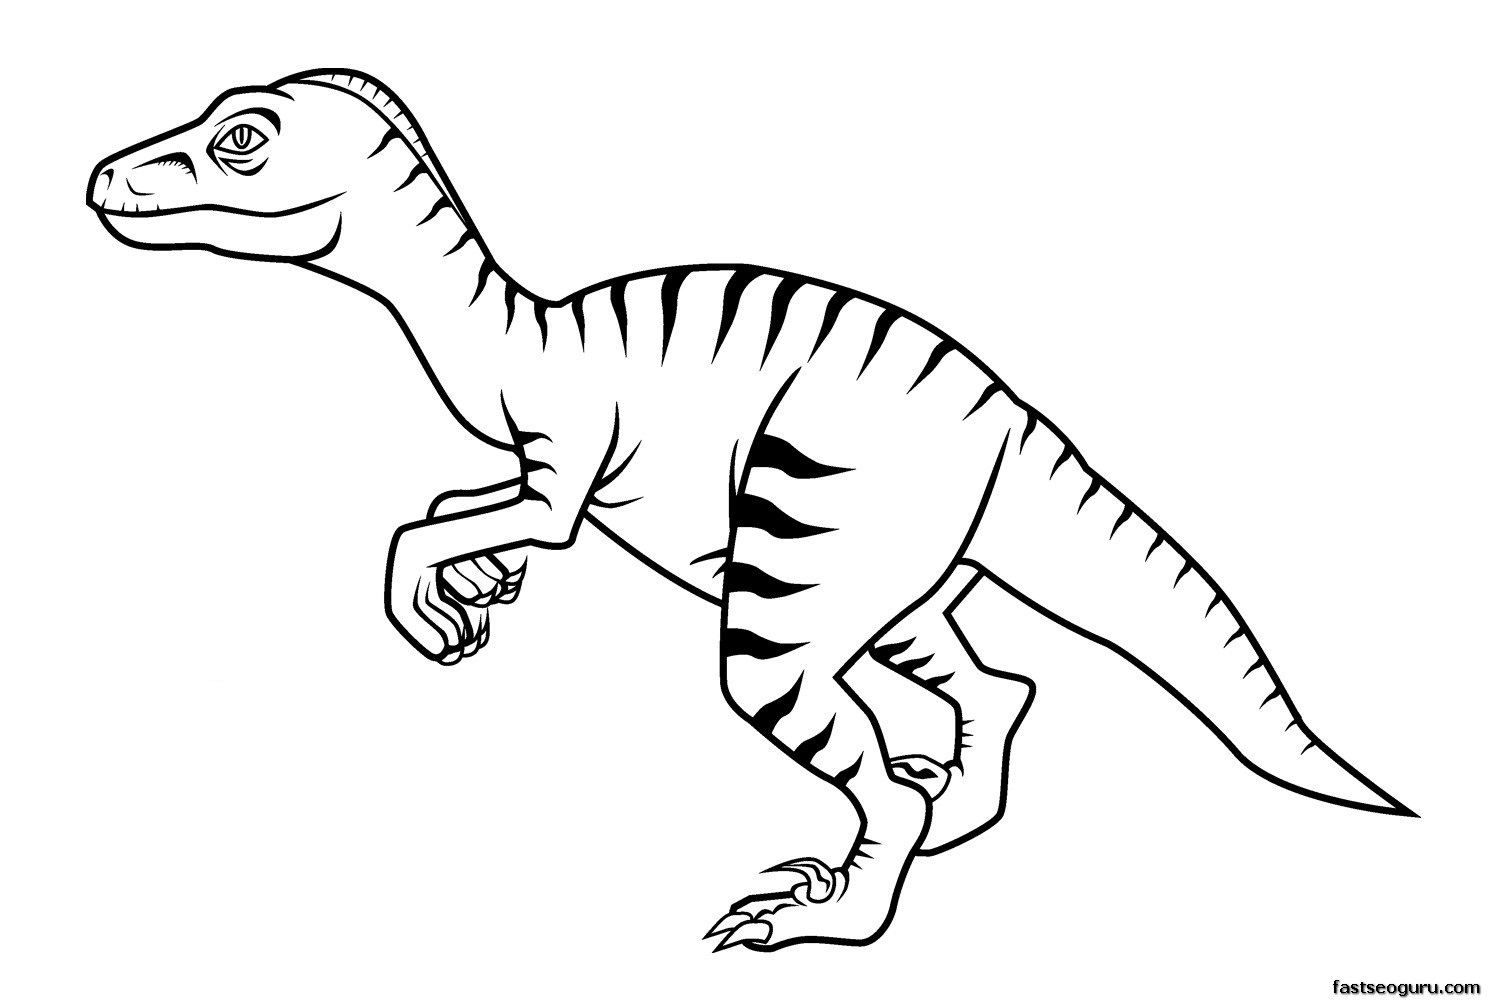 print dinosaur coloring pages free printable dinosaur coloring pages for kids coloring dinosaur print pages